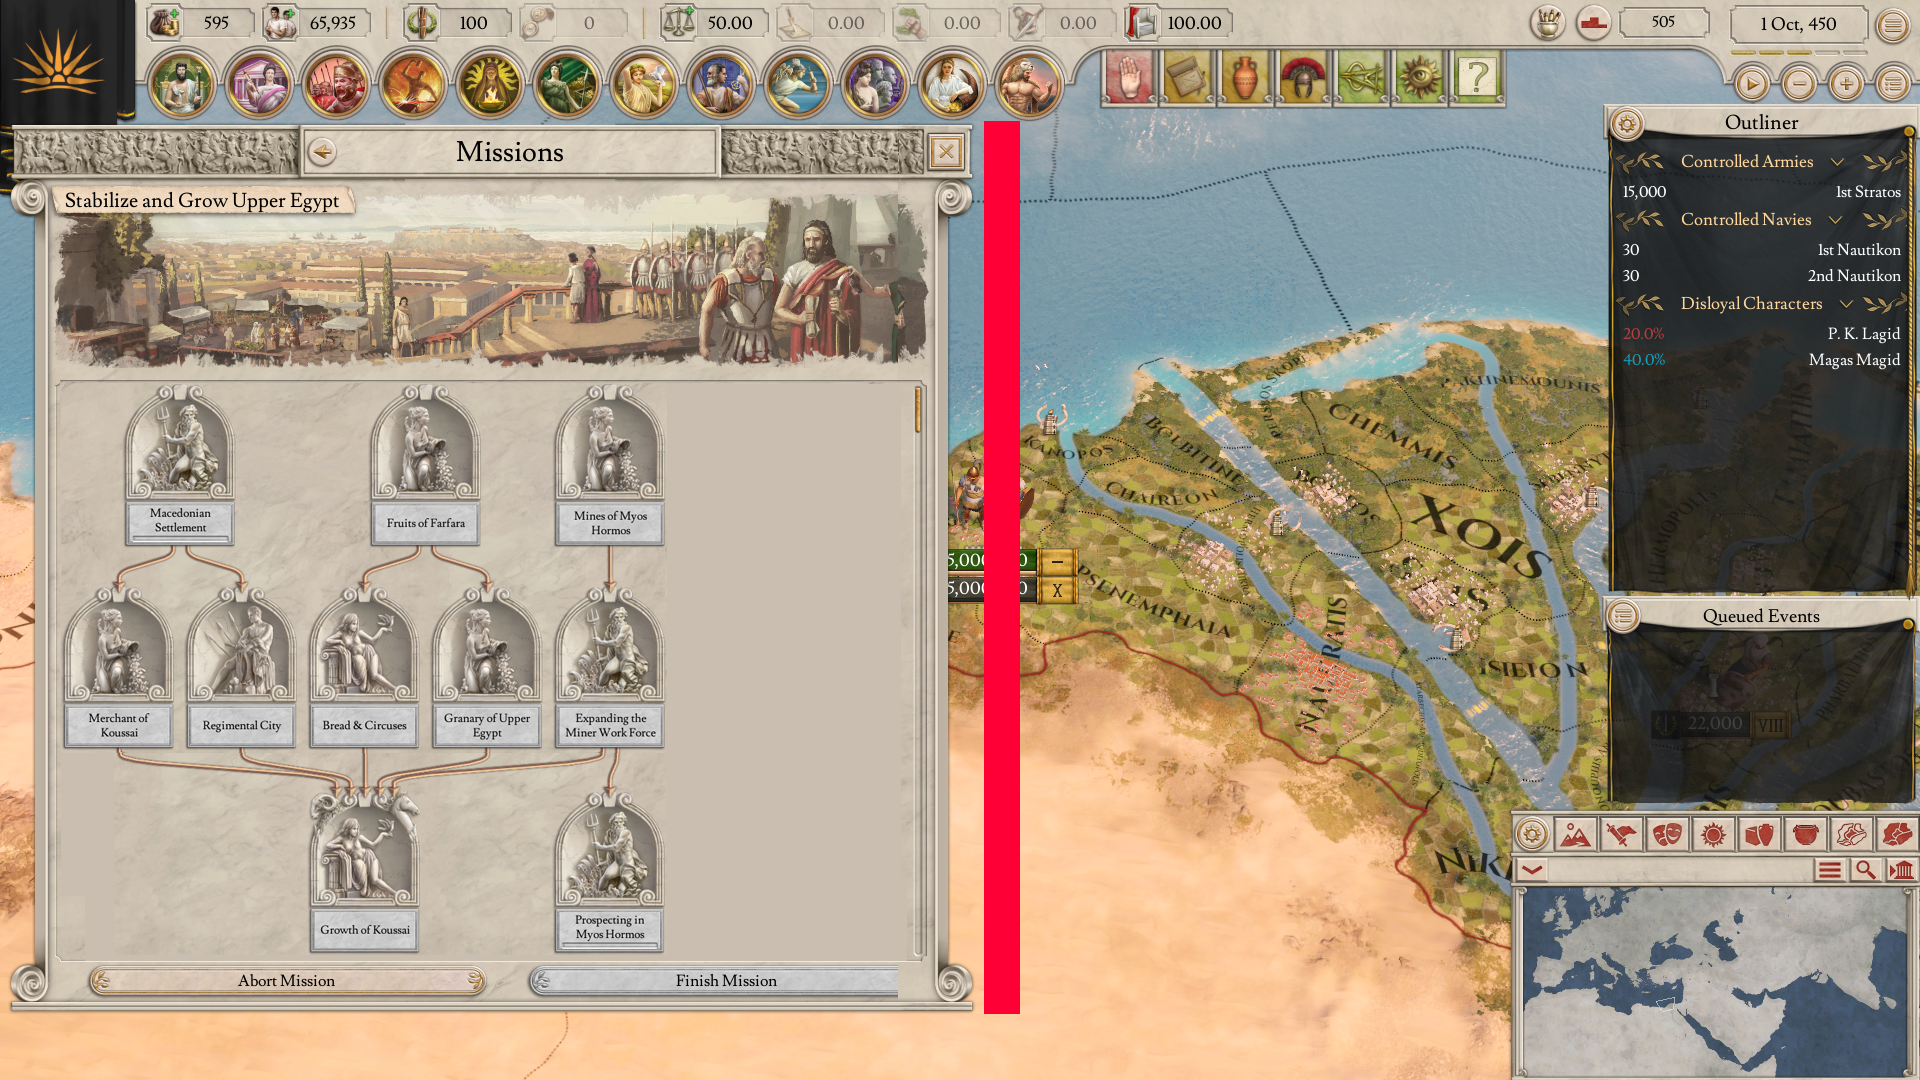 Missions-Egypt-2-Done.png